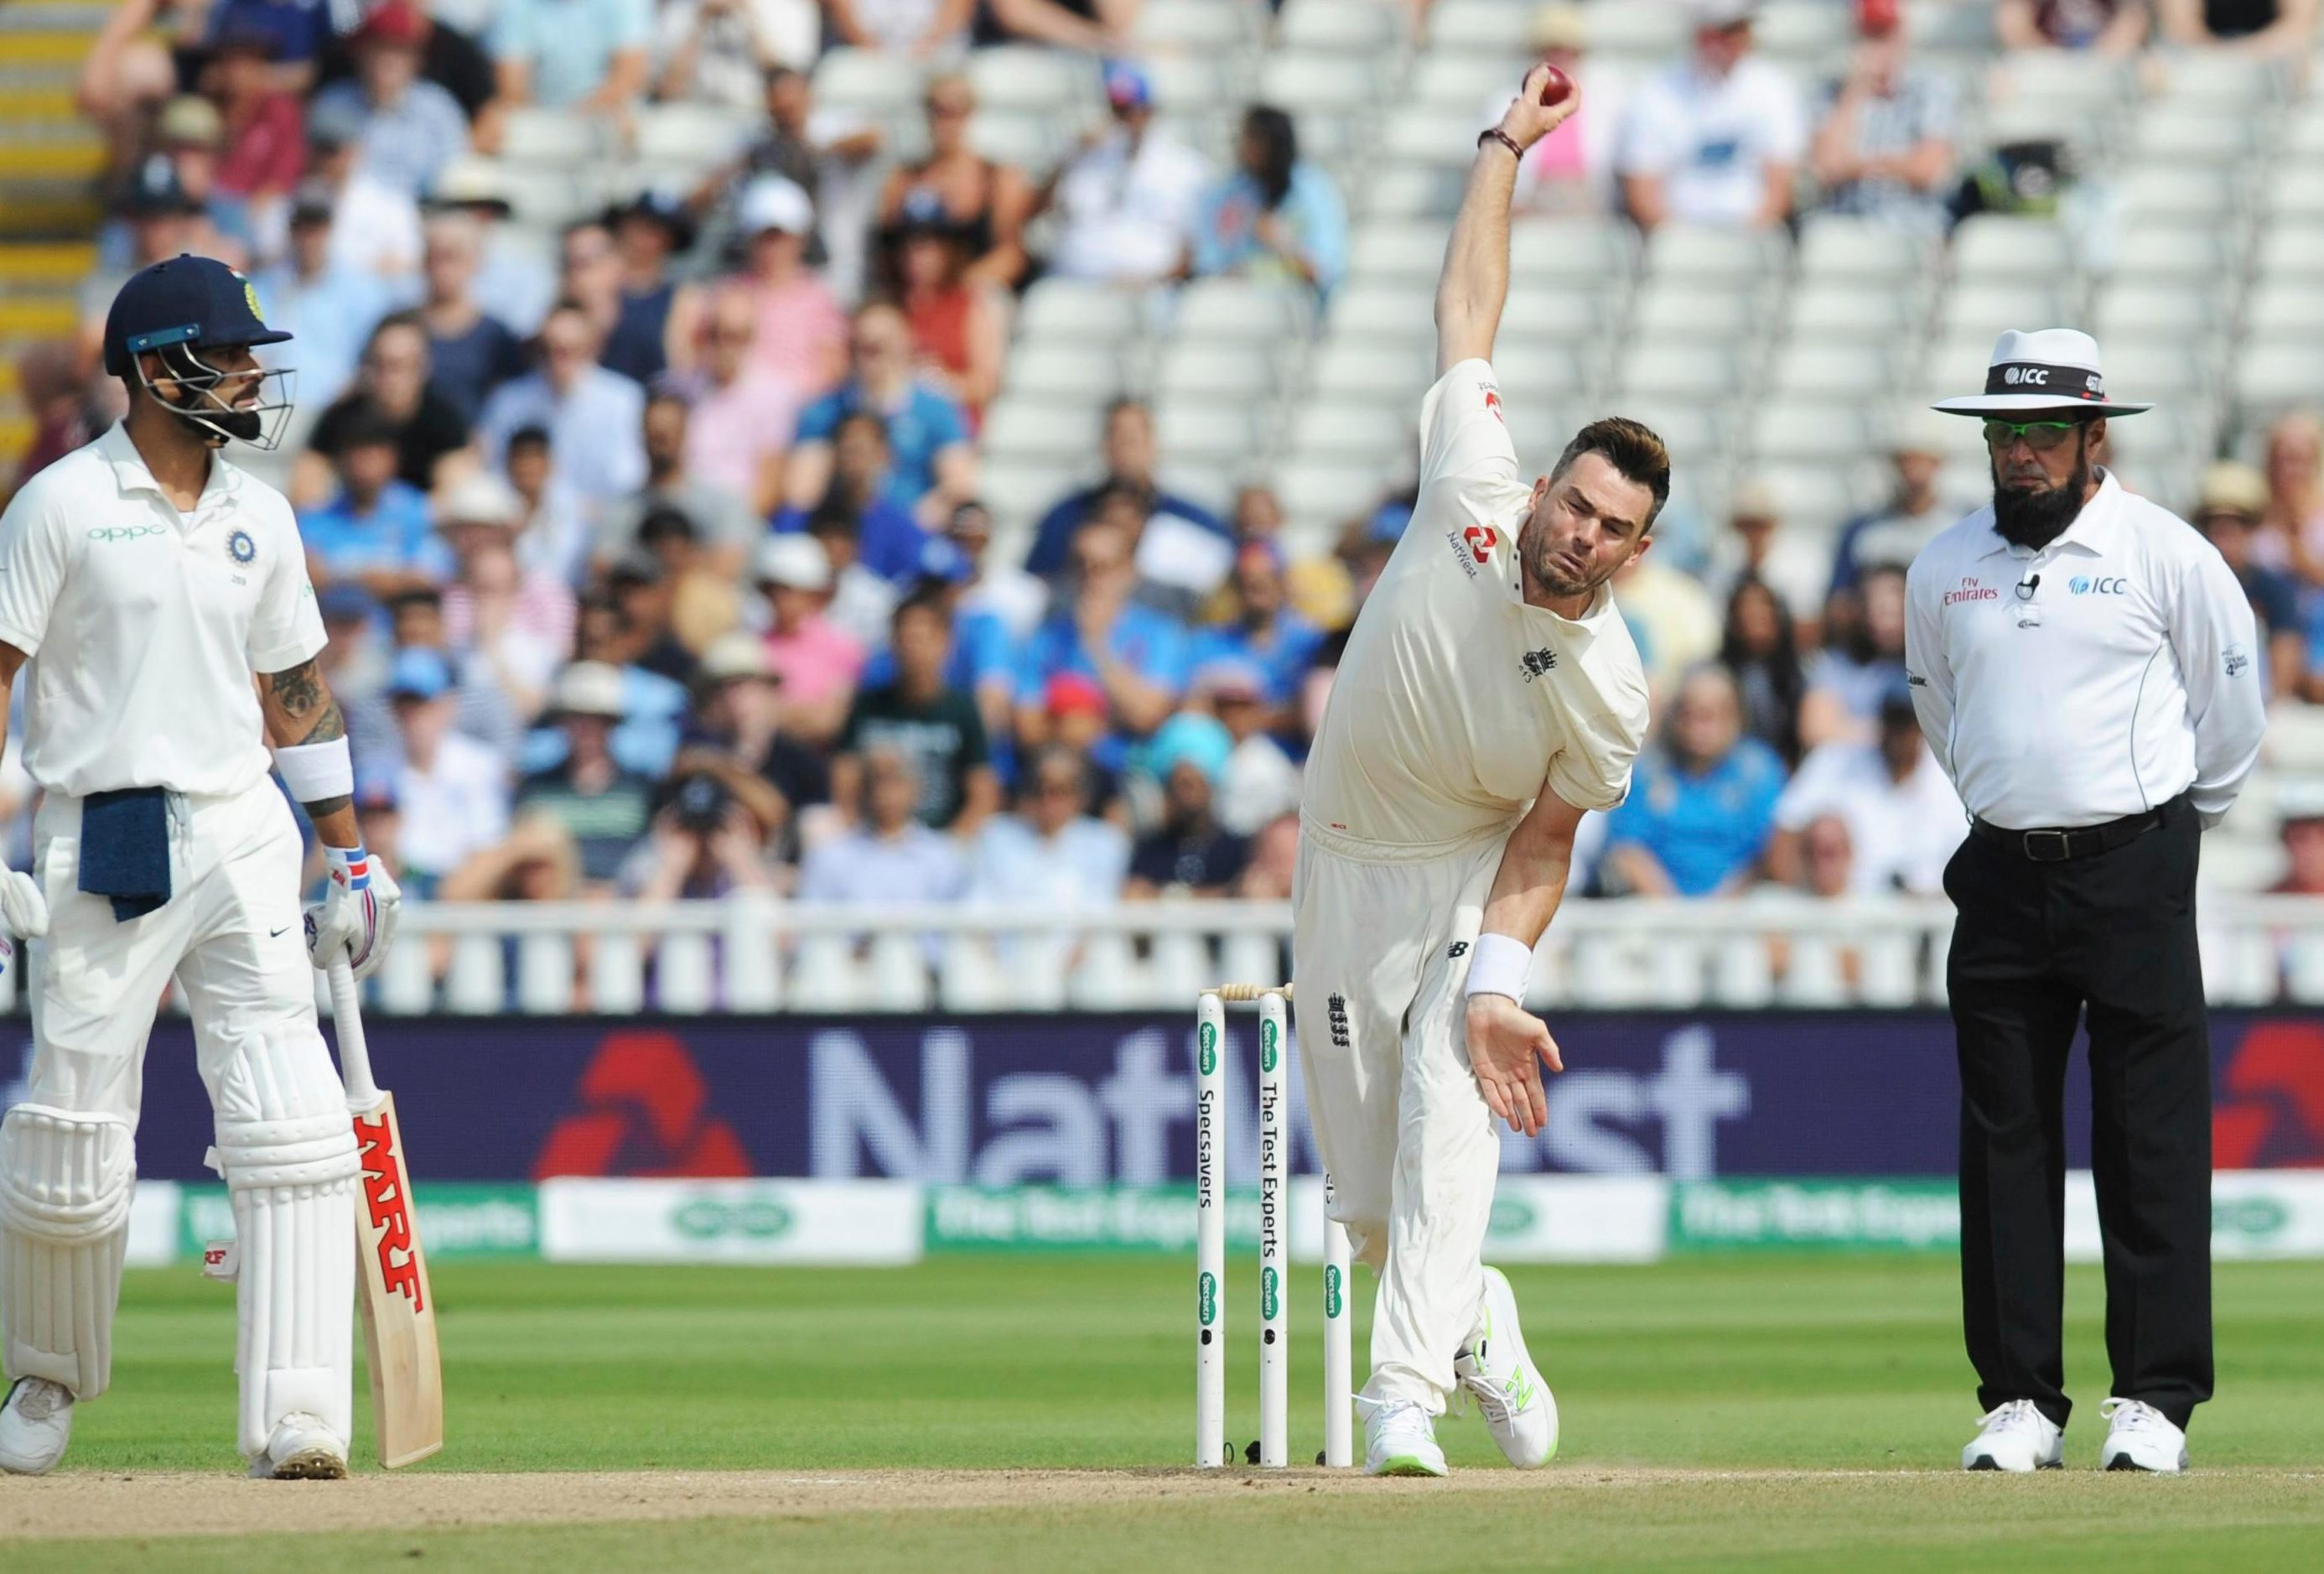 Virat Kohli looks on as James Anderson bowls on his way to two wickets in each innings in an intriguing series opener, before they will switch to Lord's